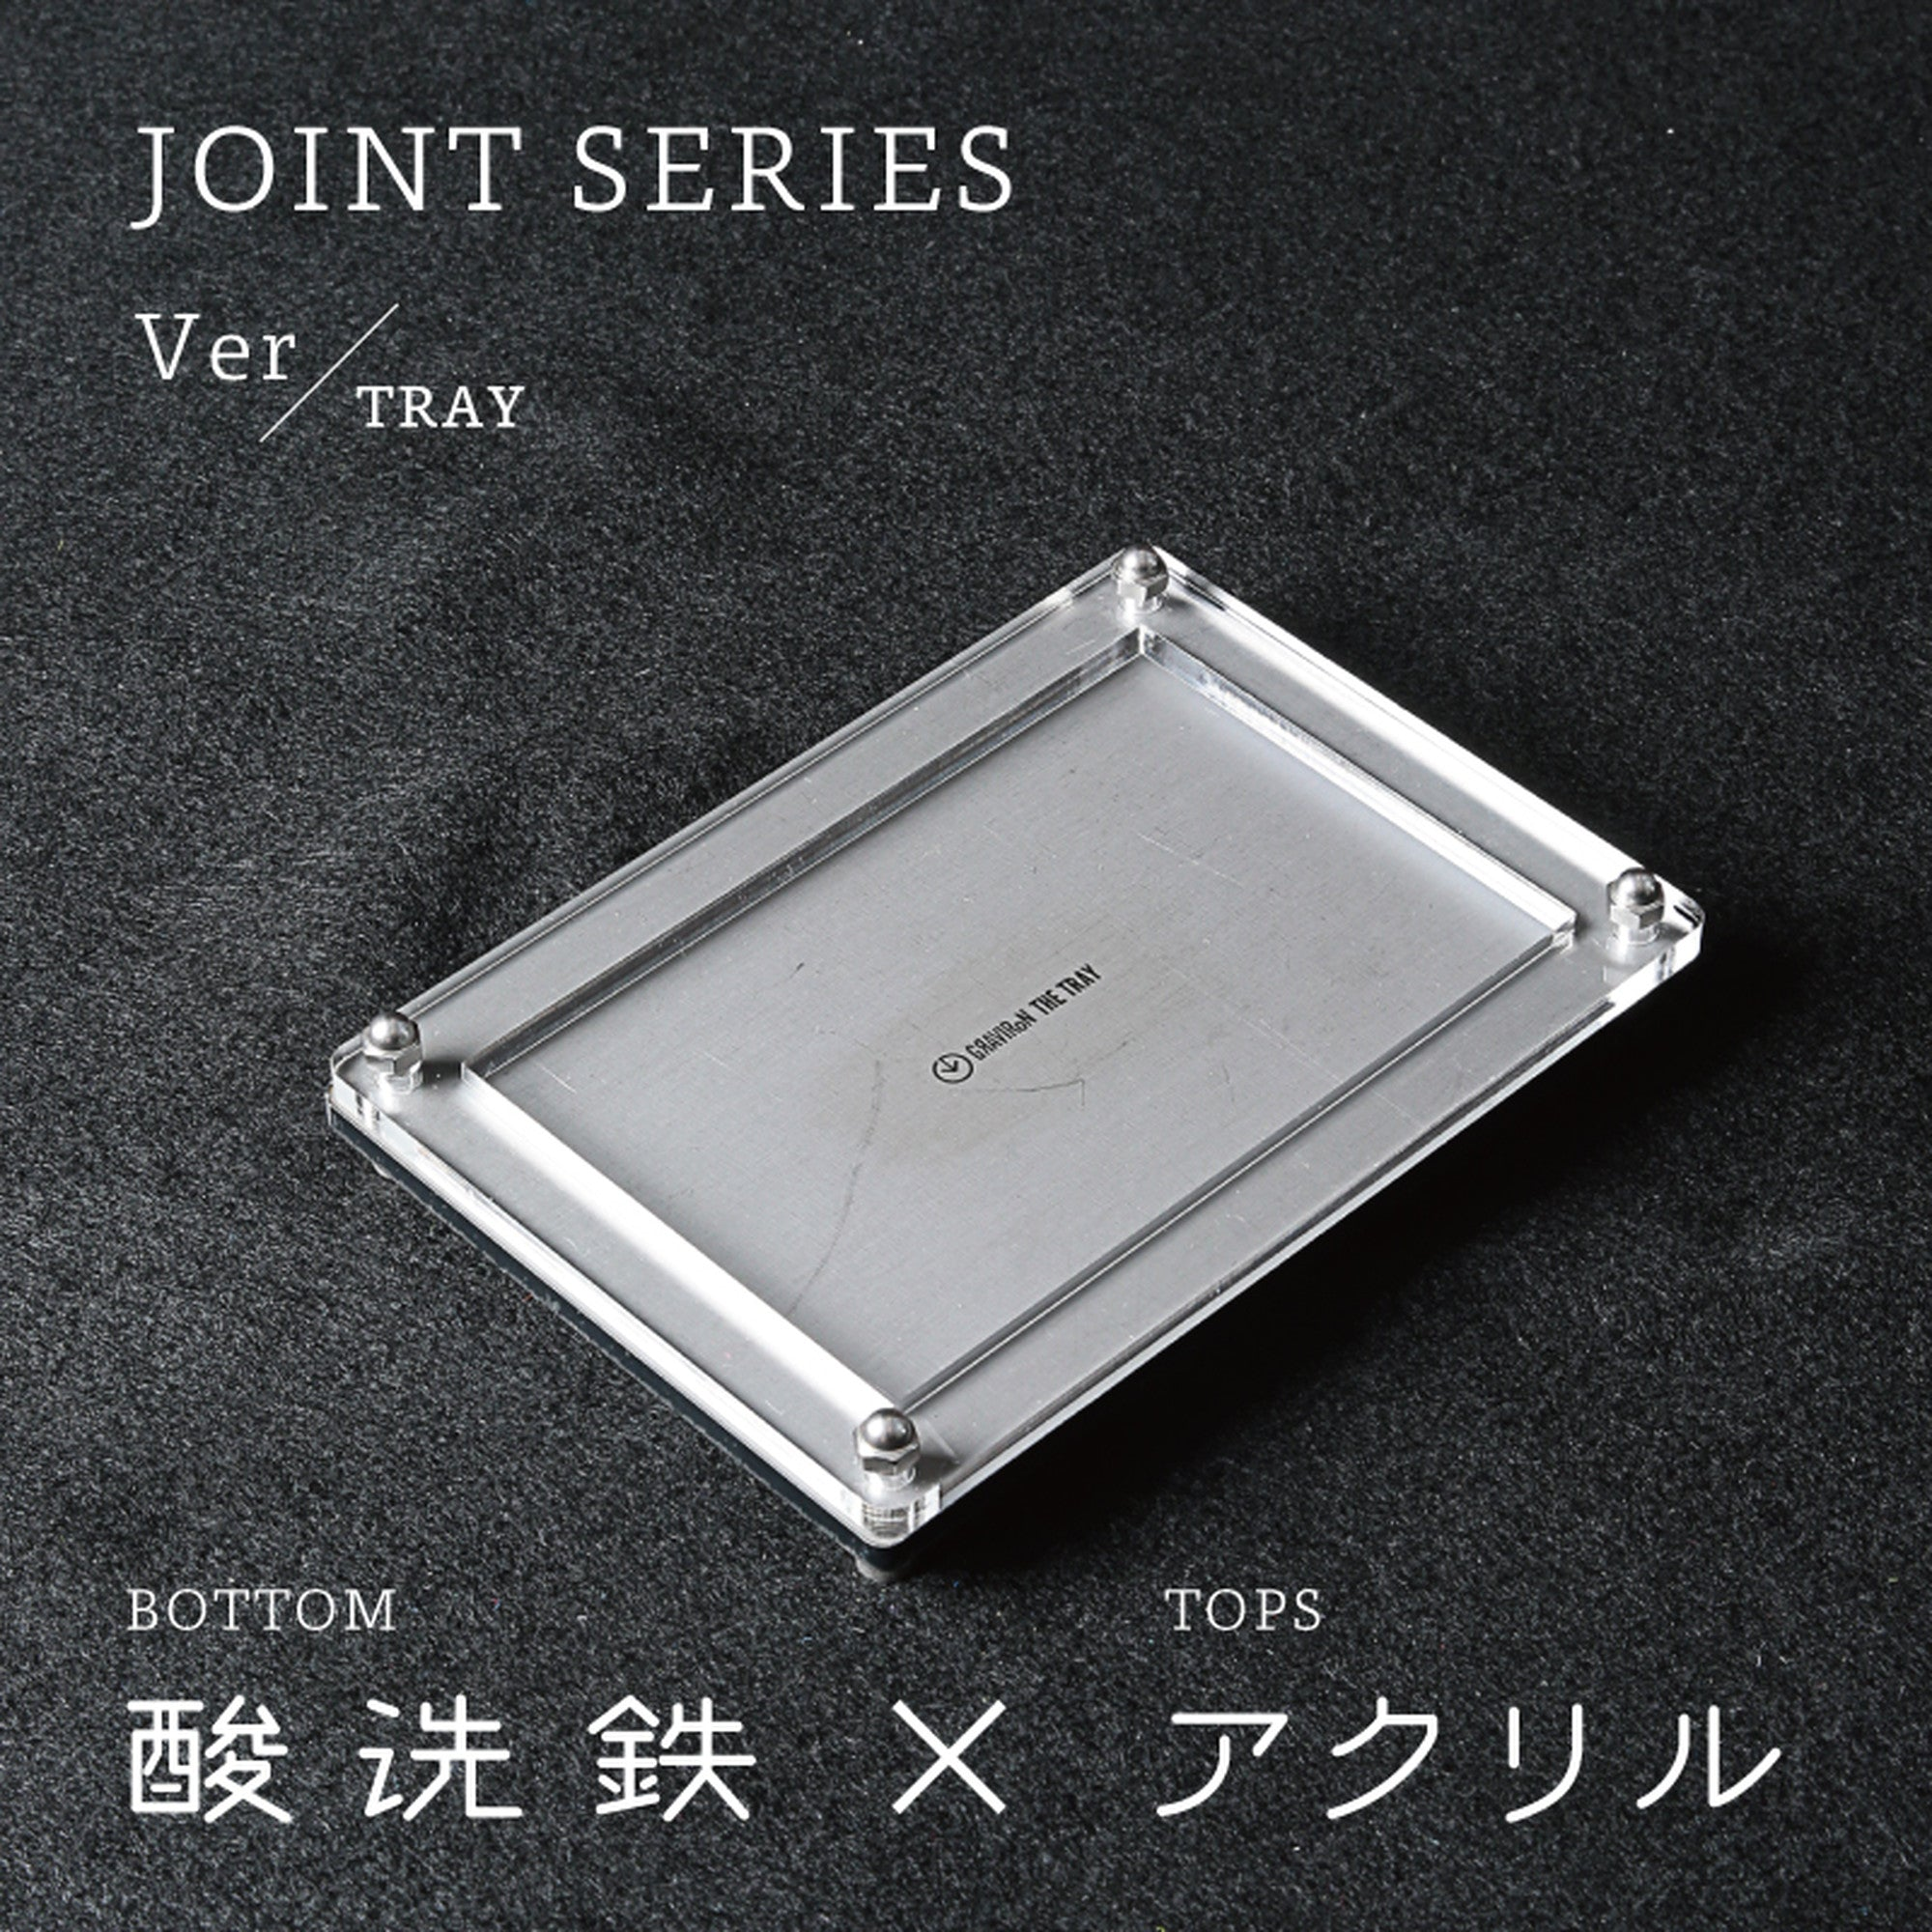 Joint Series Tray BOTTOM:酸洗鉄、TOP:アクリル